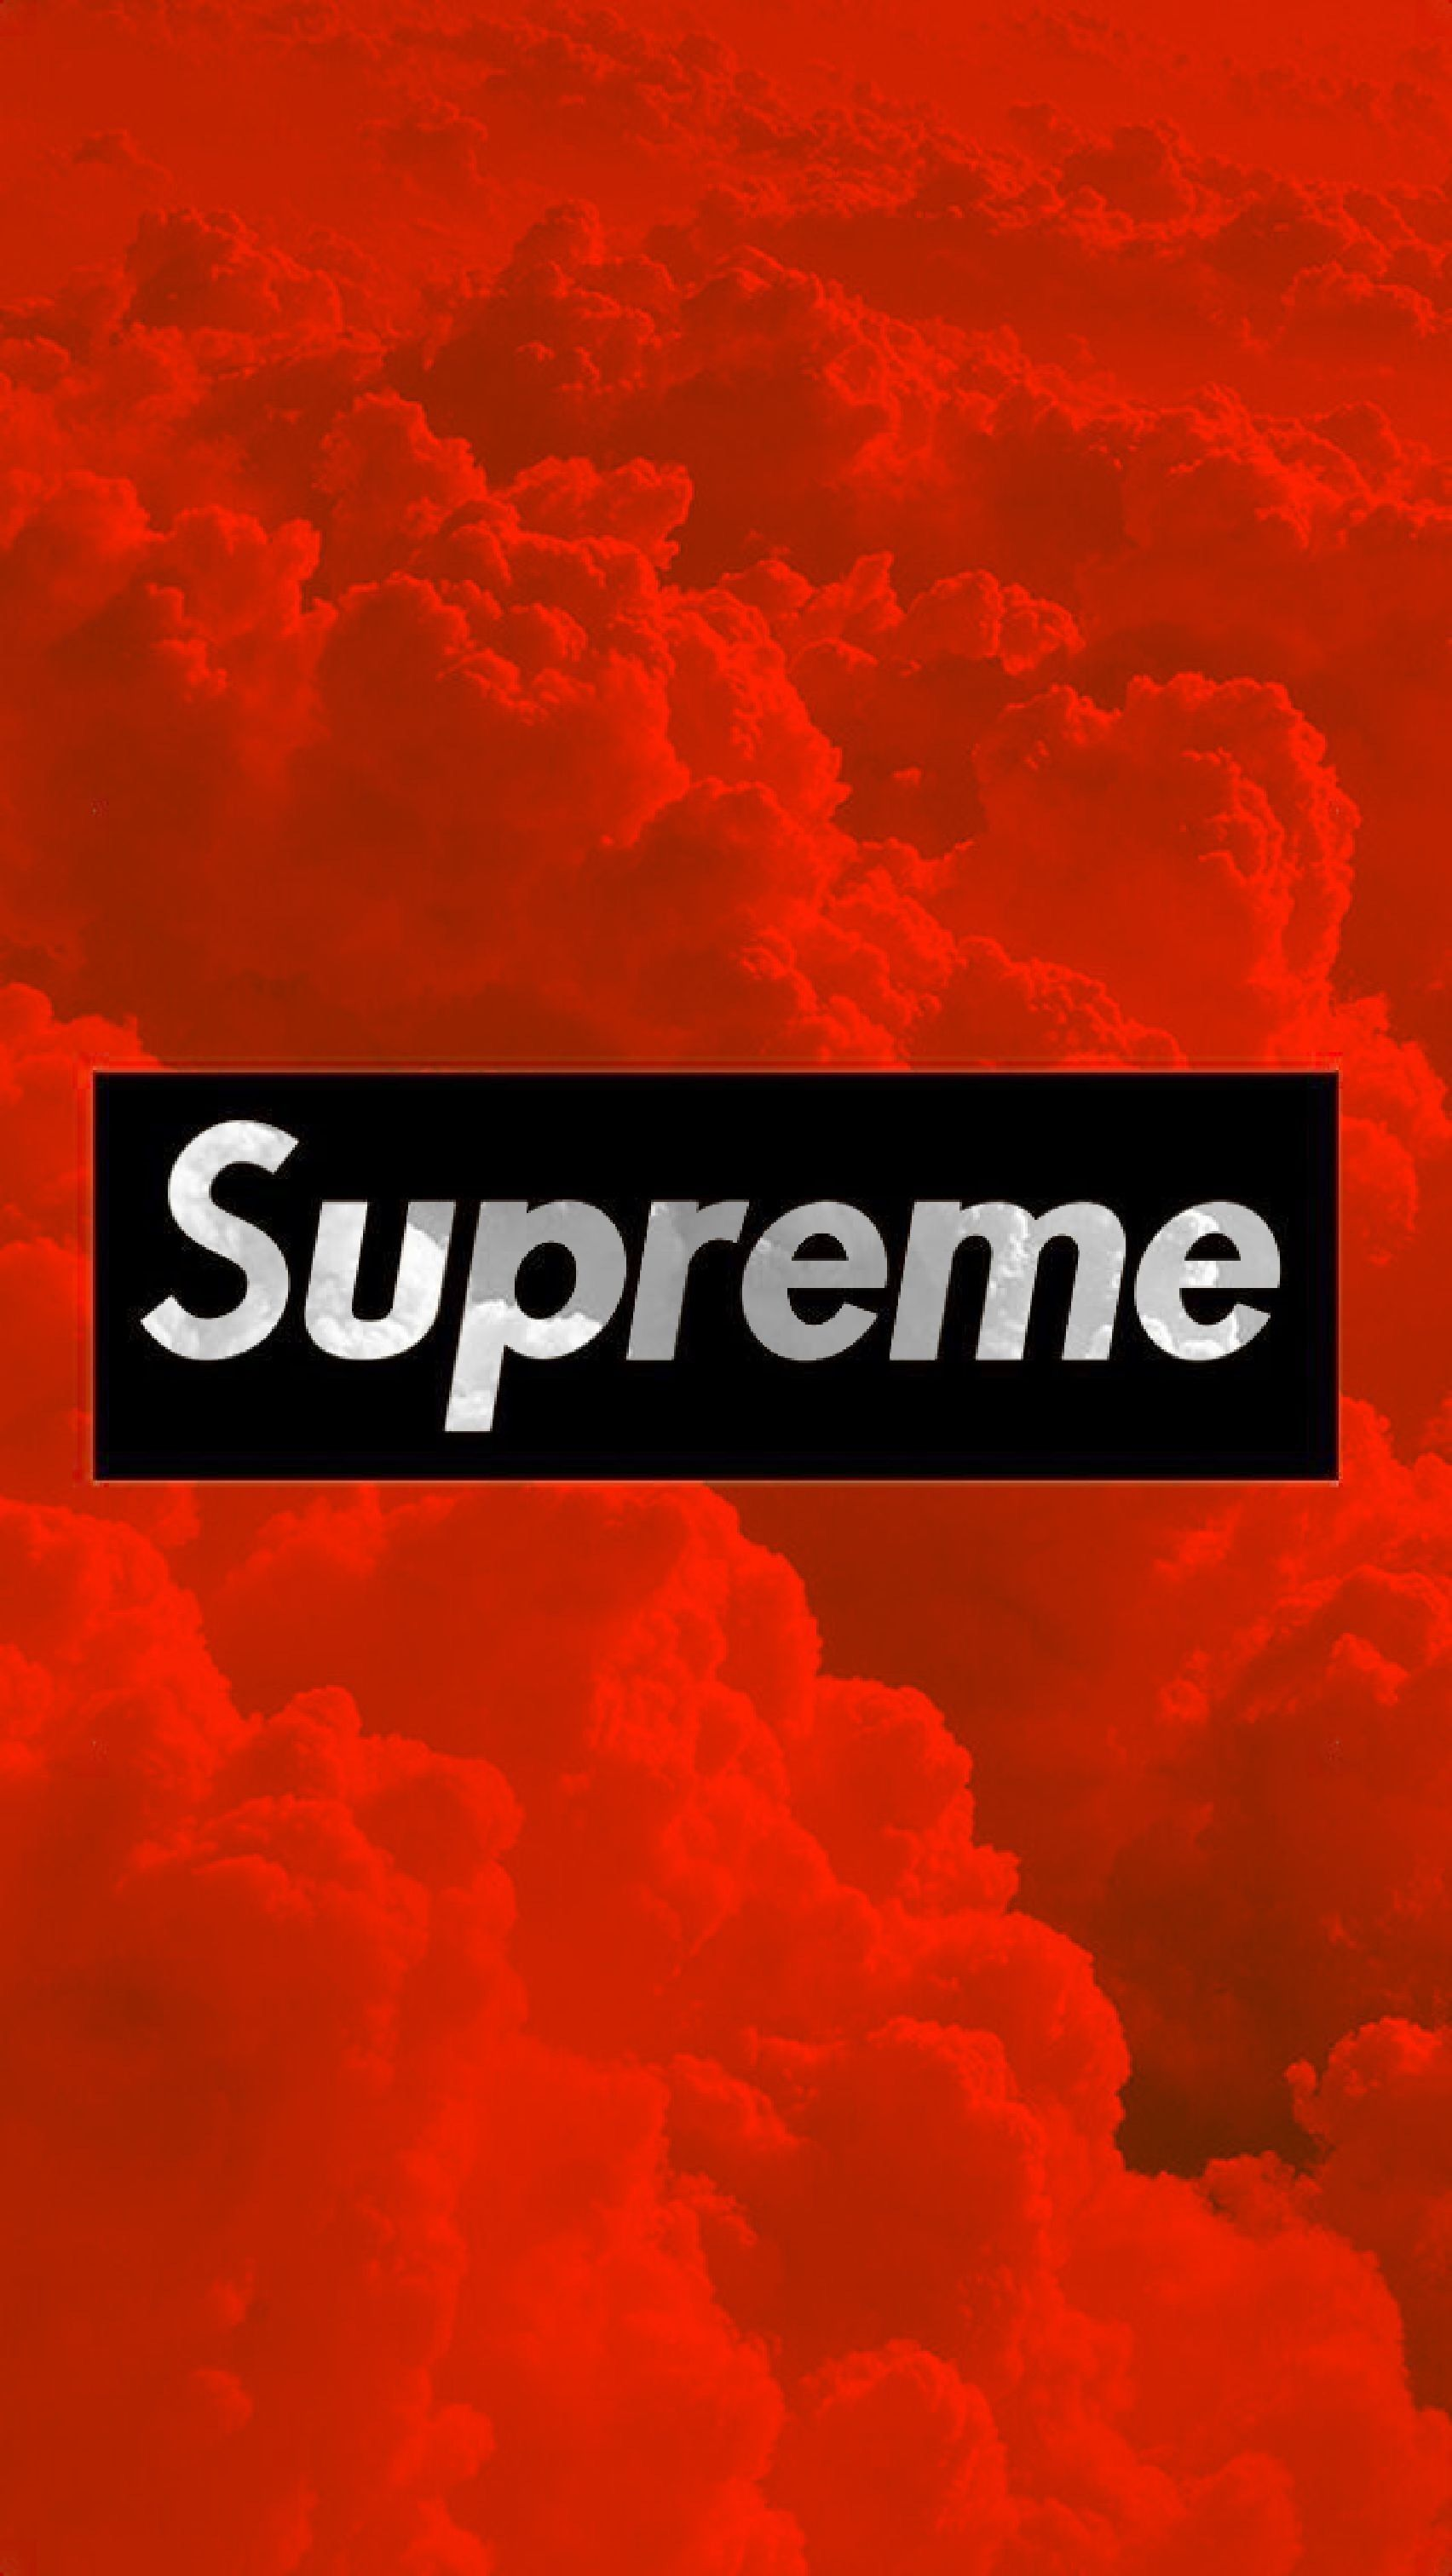 Awesome Red Supreme Wallpaper In 2020 Supreme Wallpaper Supreme Iphone Wallpaper Supreme Wallpaper Hd